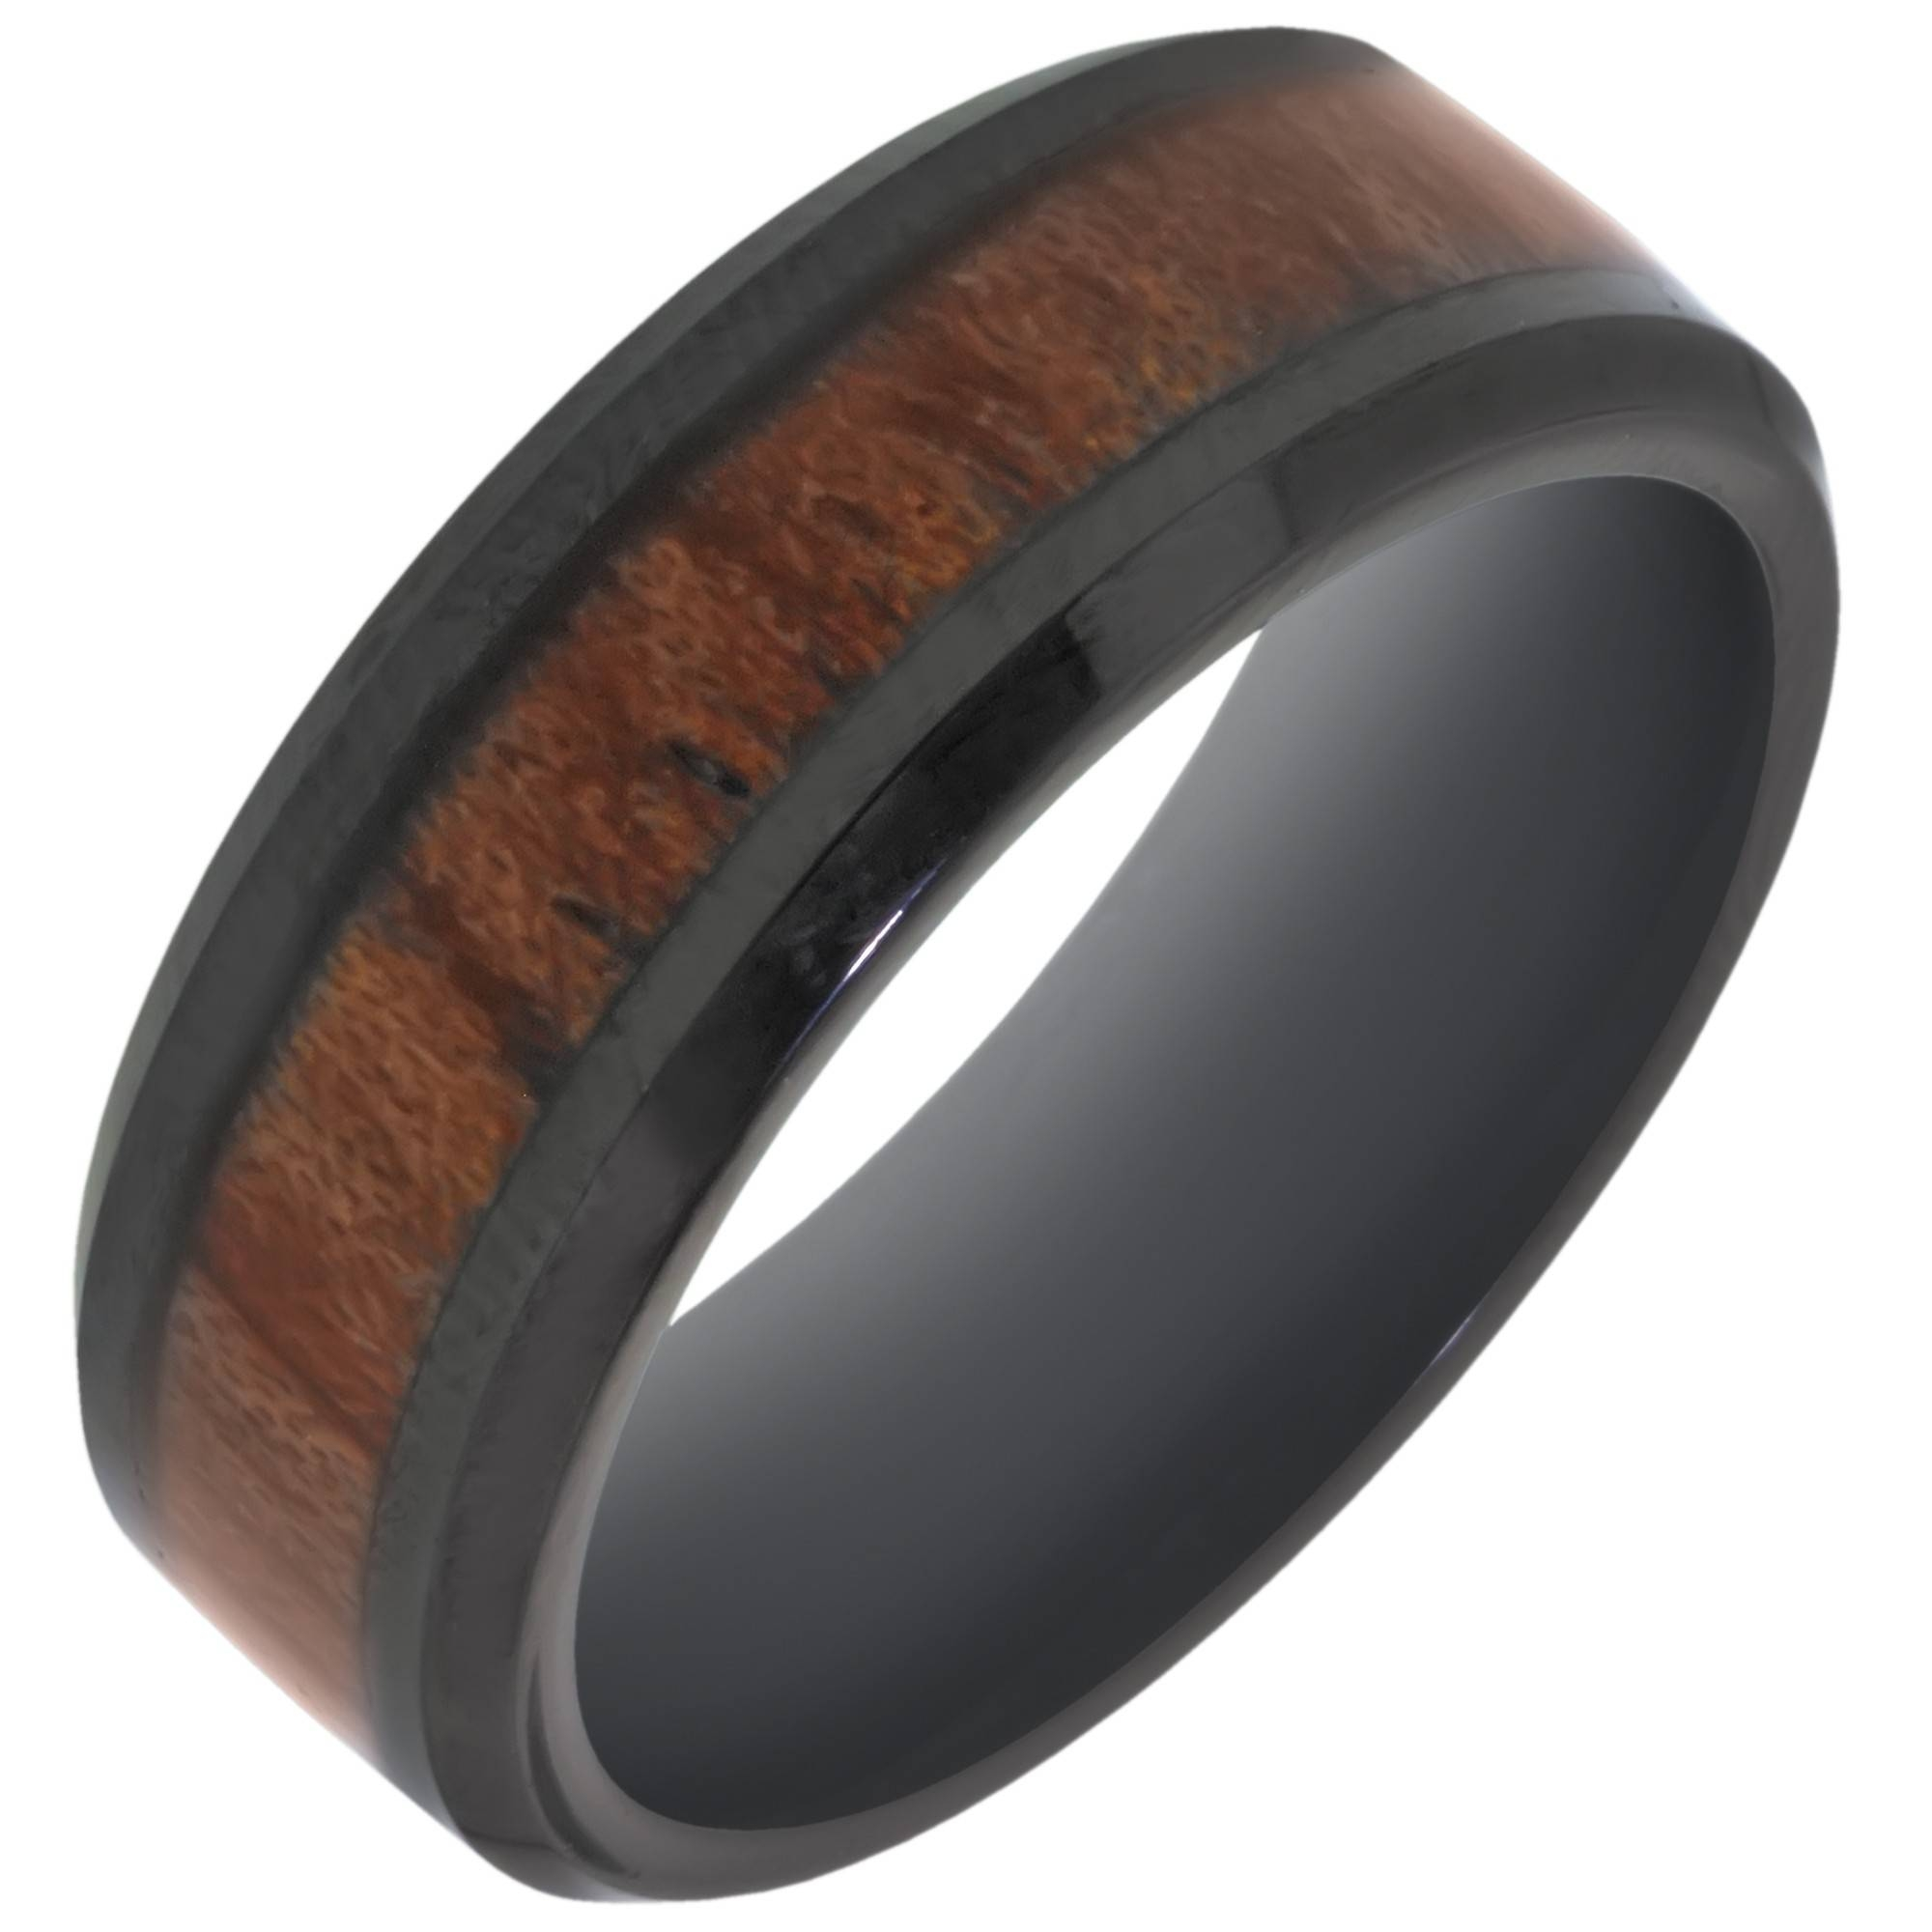 Benchmark Black Cobalt Chrome With Wood Inlay Wedding Band (8Mm) Regarding Men's Wedding Bands Wood Inlay (View 3 of 15)